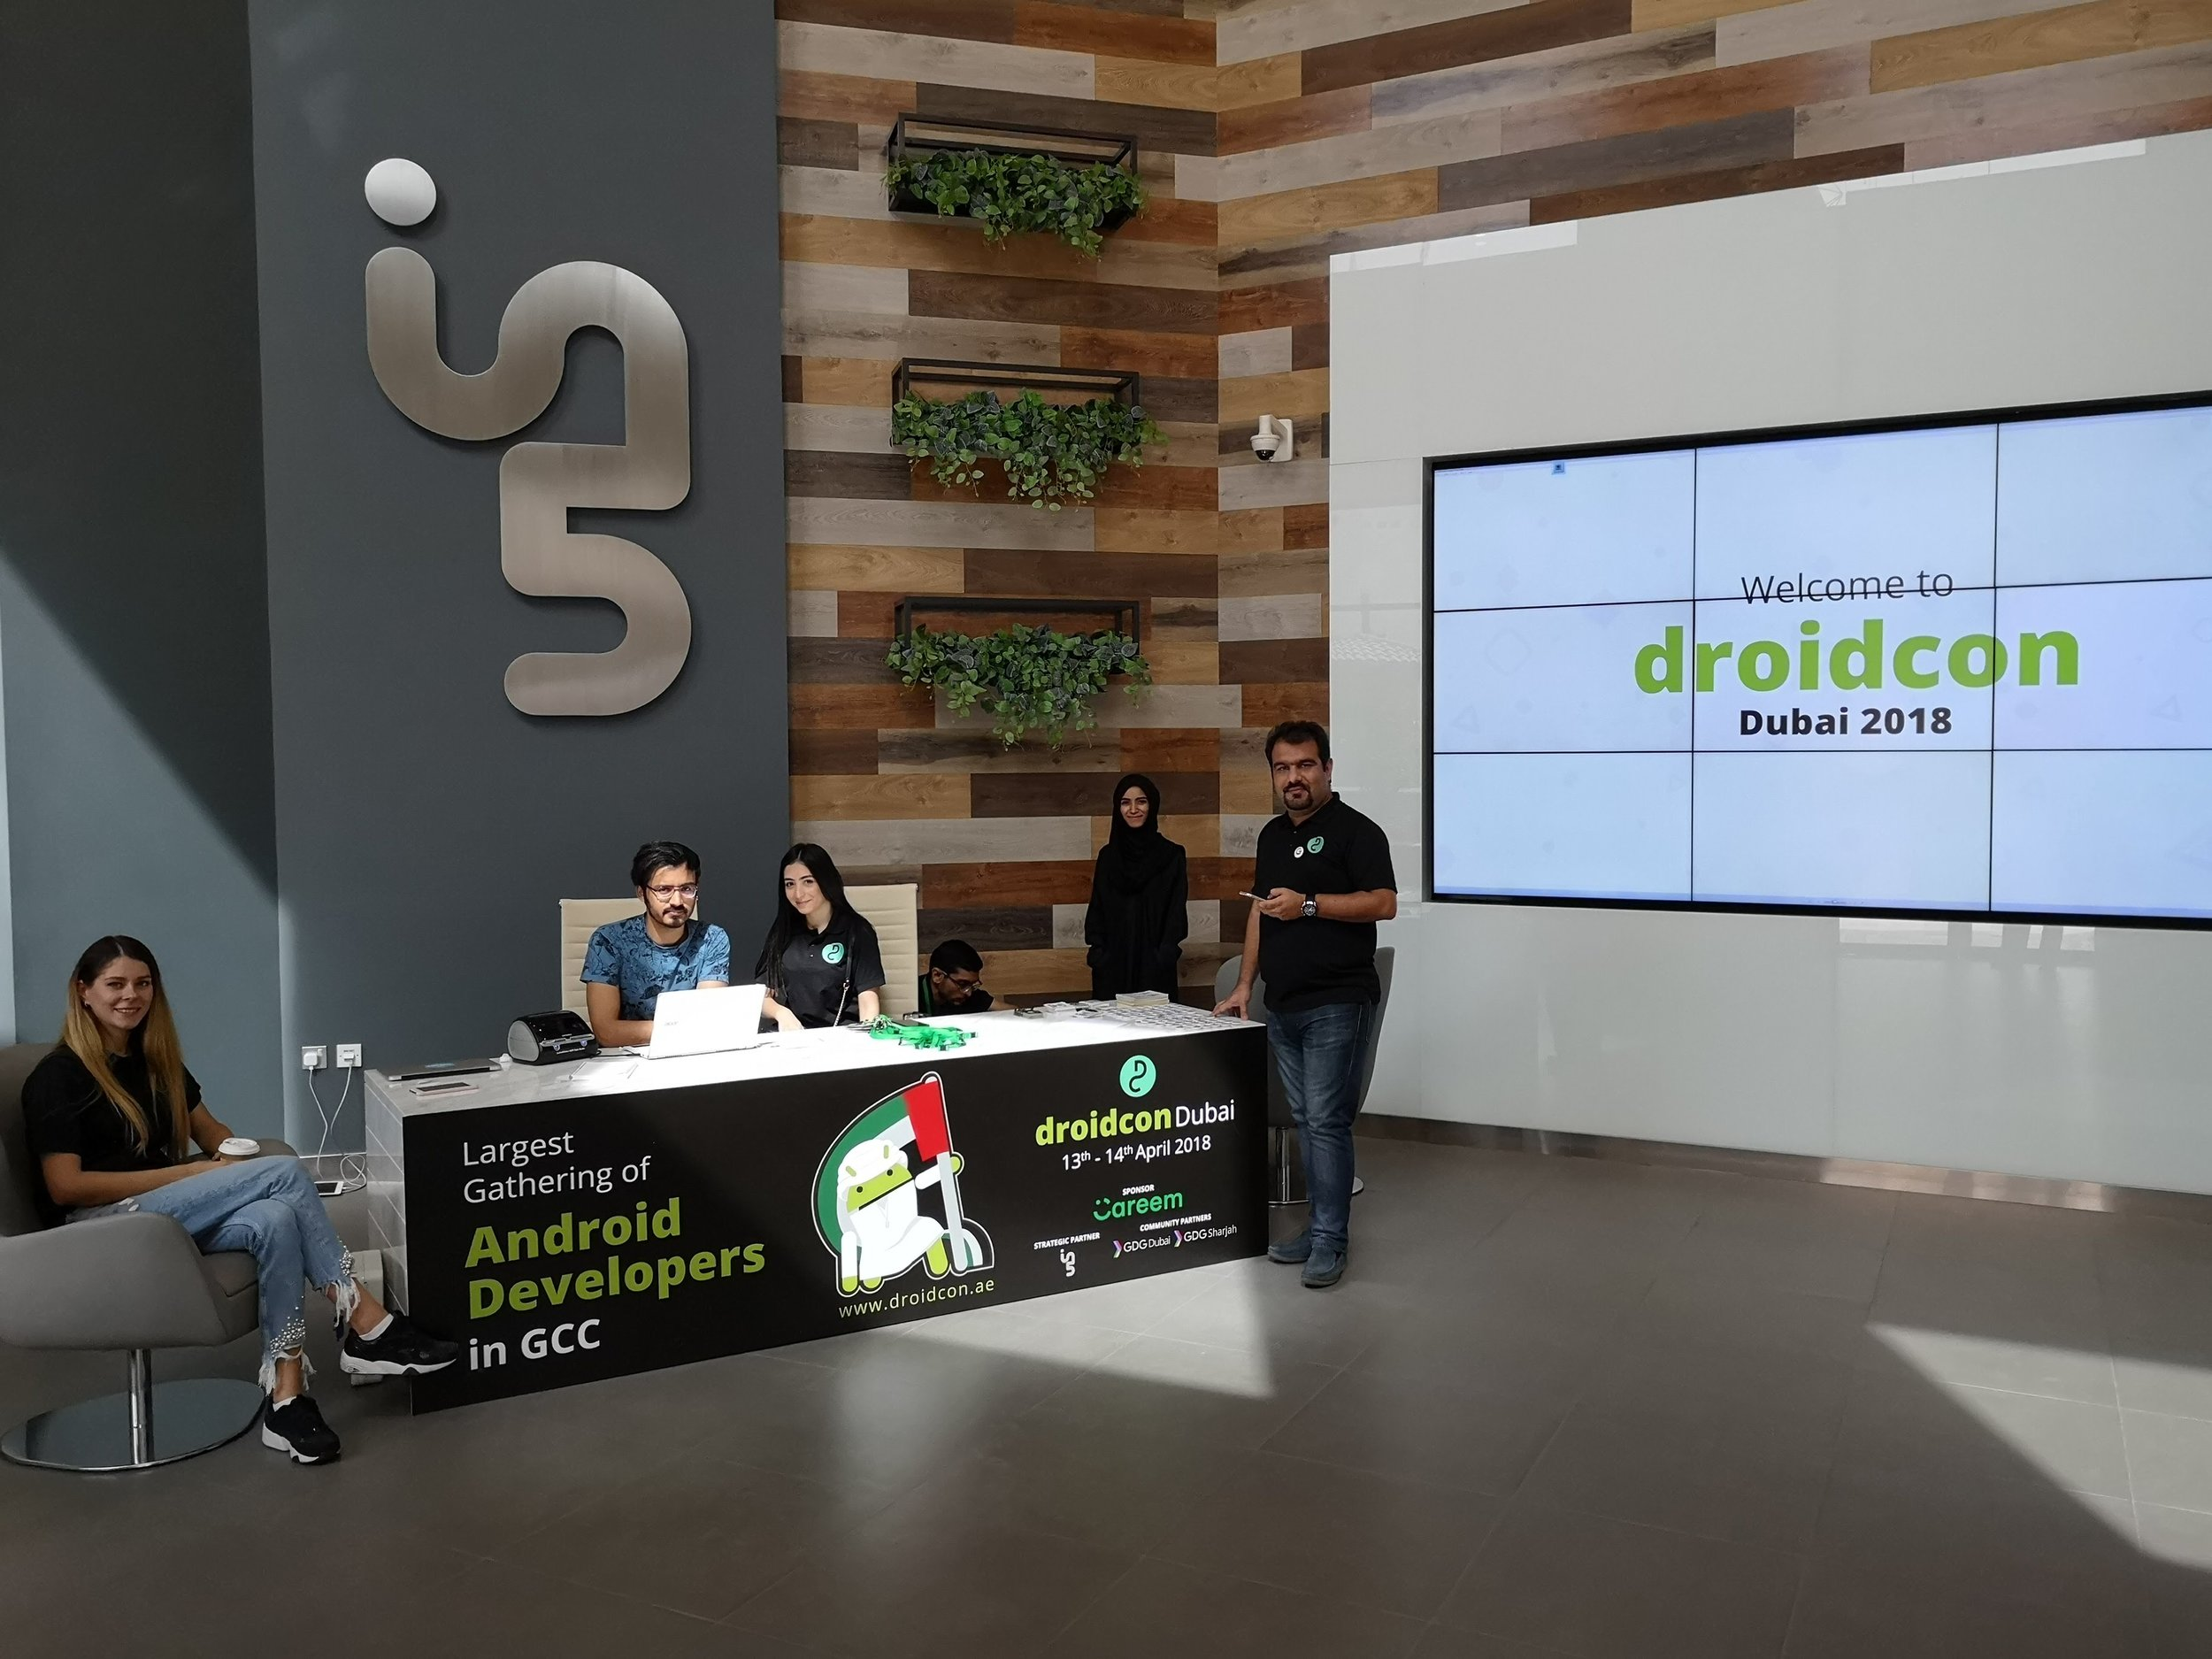 Some of the heroes who made droidcon Dubai 2018 possible at in5 Dubai. #droidconae